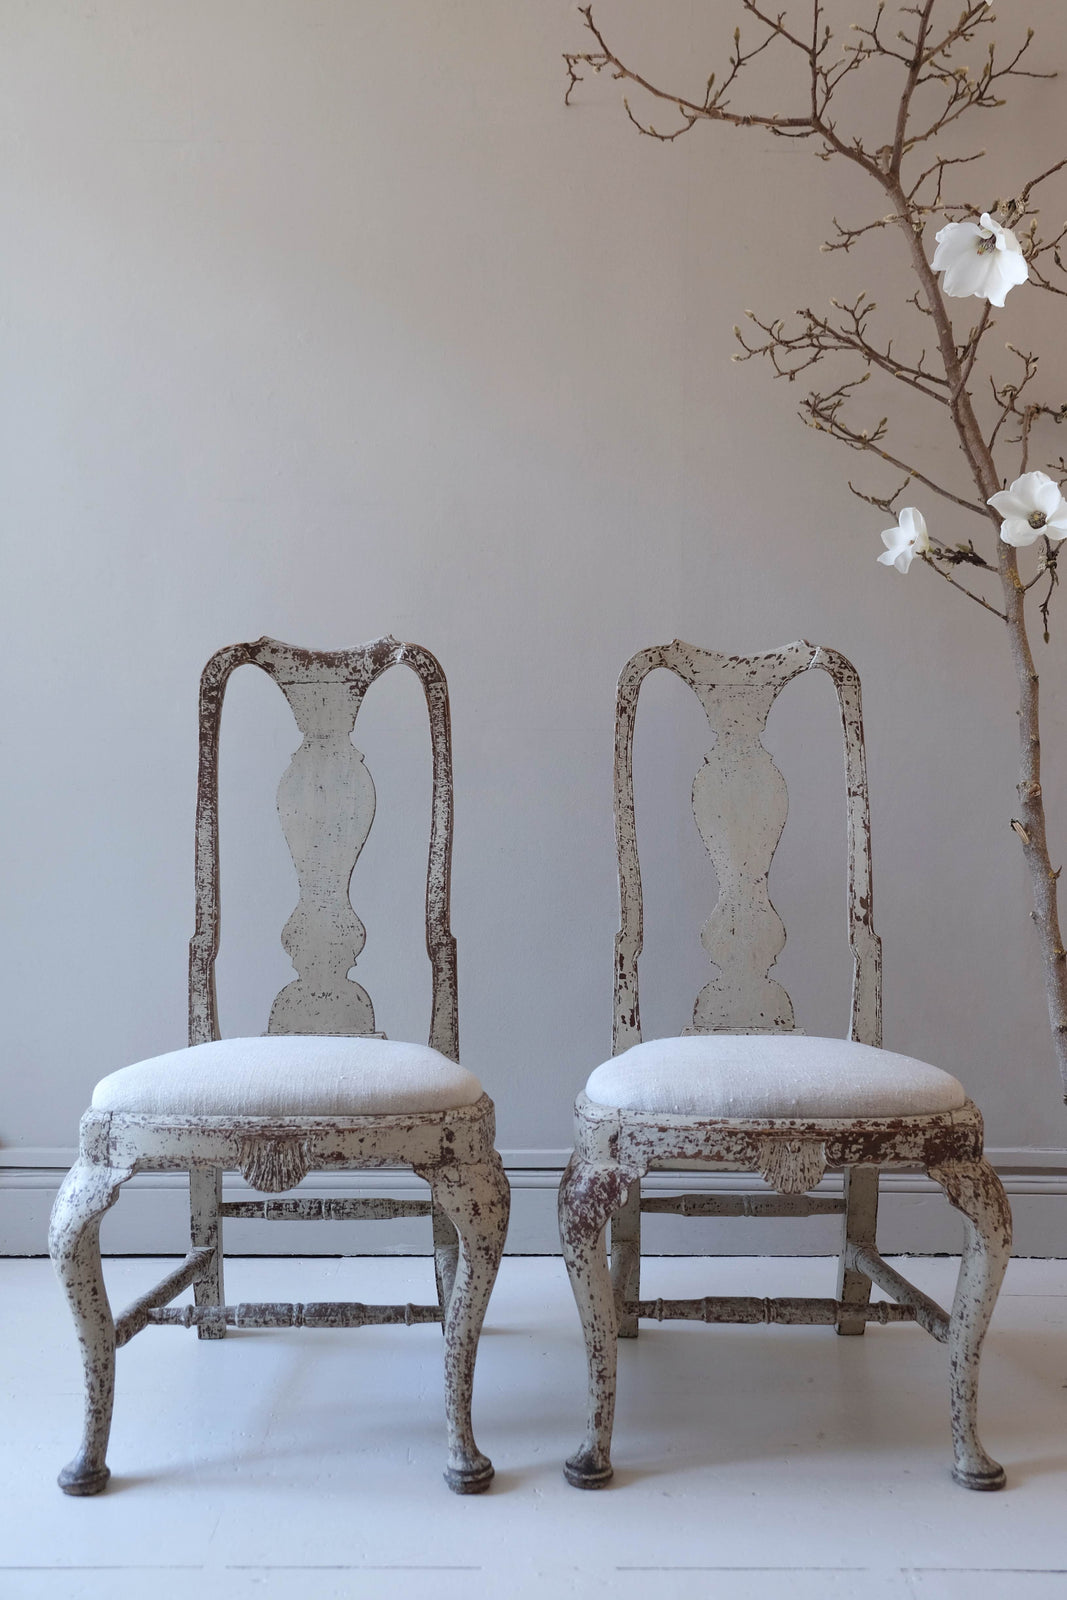 Pair of Early 19th C. Swedish Chairs